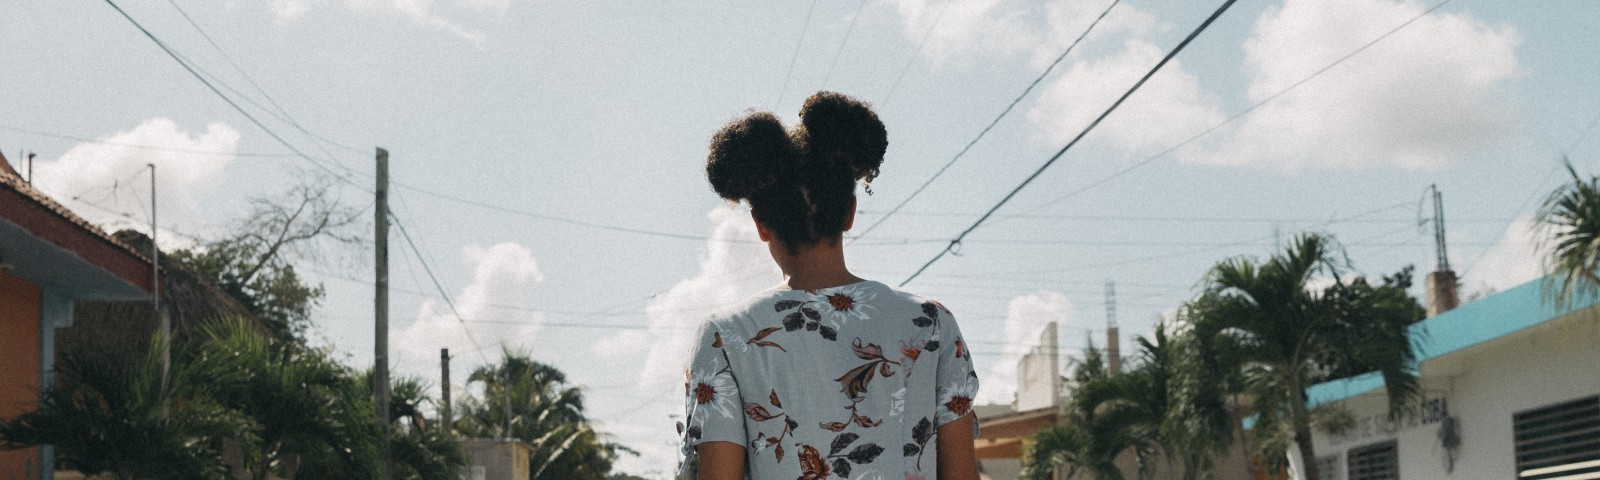 Back view of a young woman walking down a street.